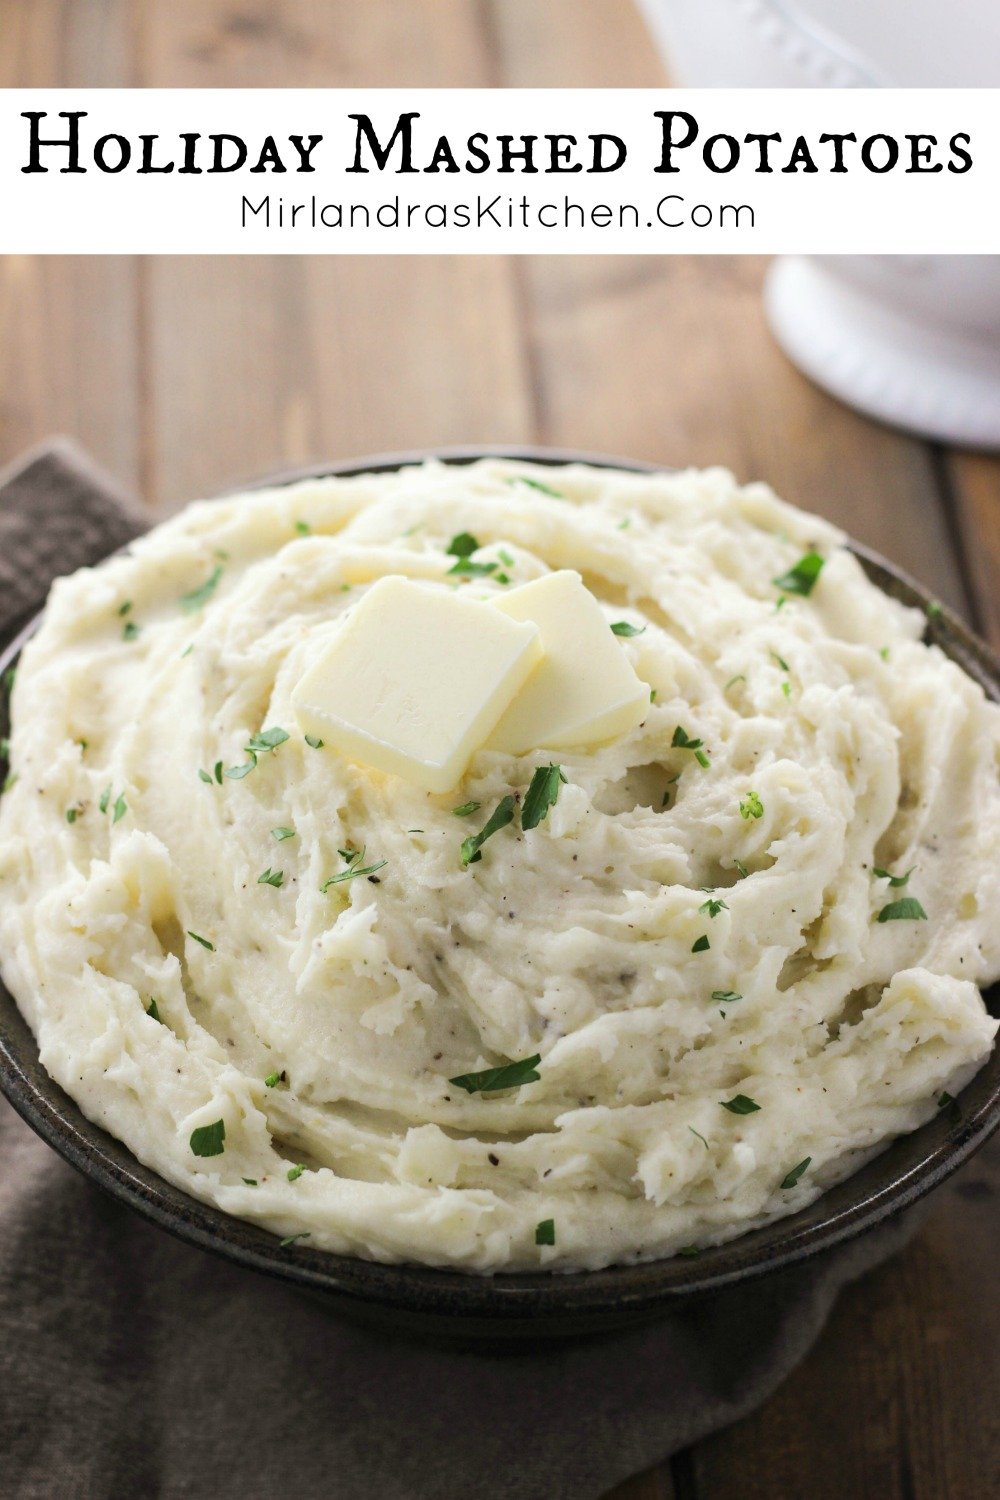 Simple, no fuss mashed potatoes that are rich and fluffy. These are perfect for holiday meals when mashed potatoes should be extra special!